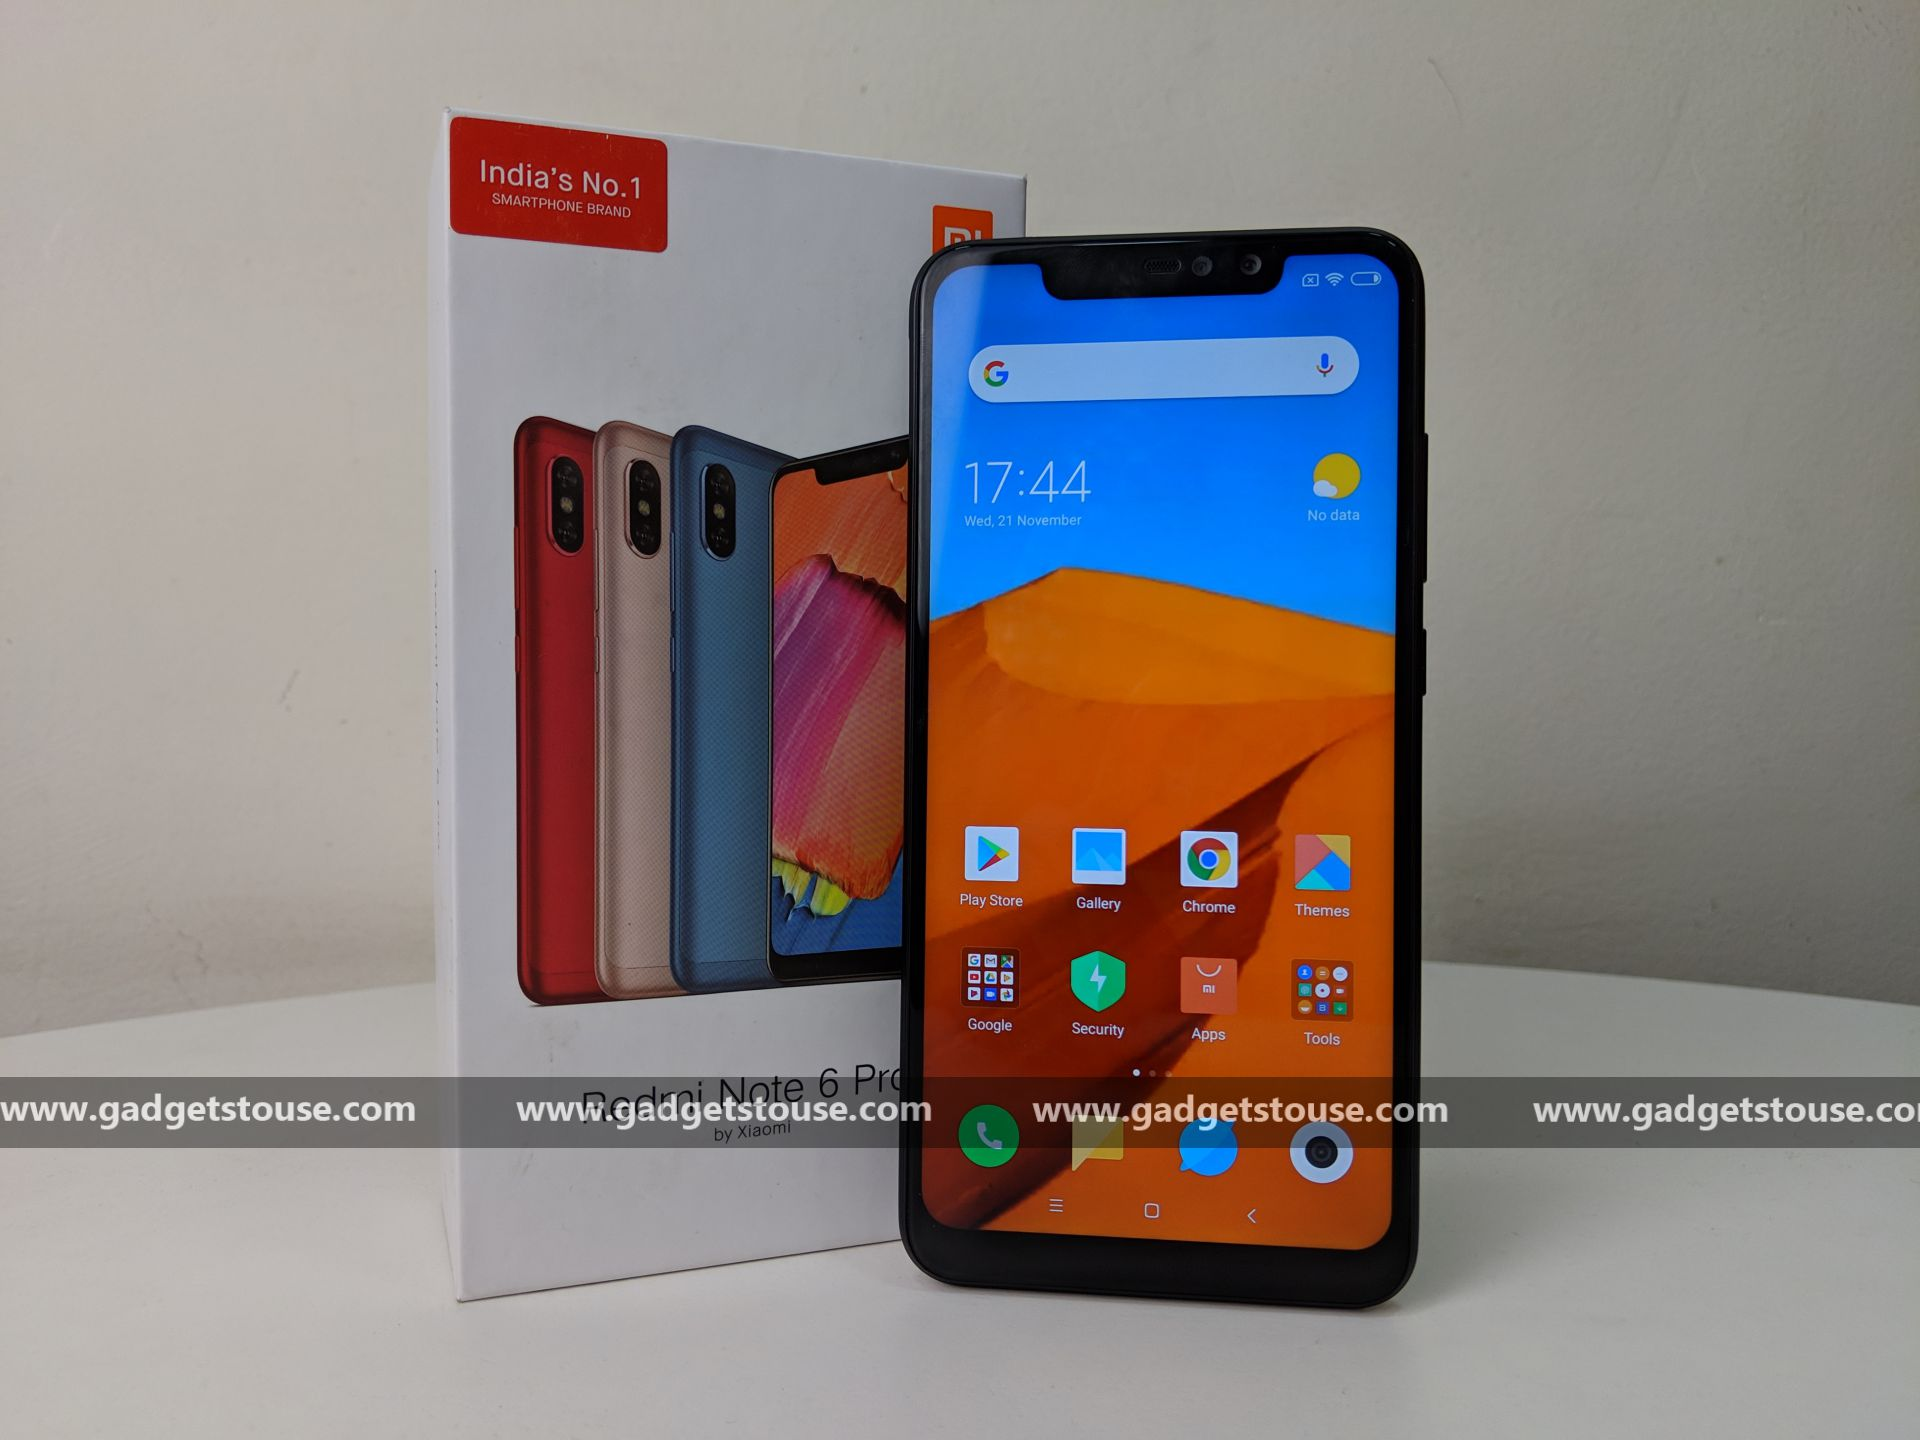 c81a830af45 The Redmi Note 6 Pro sports a dual rear camera setup with a 12MP primary  camera with f 1.9 aperture